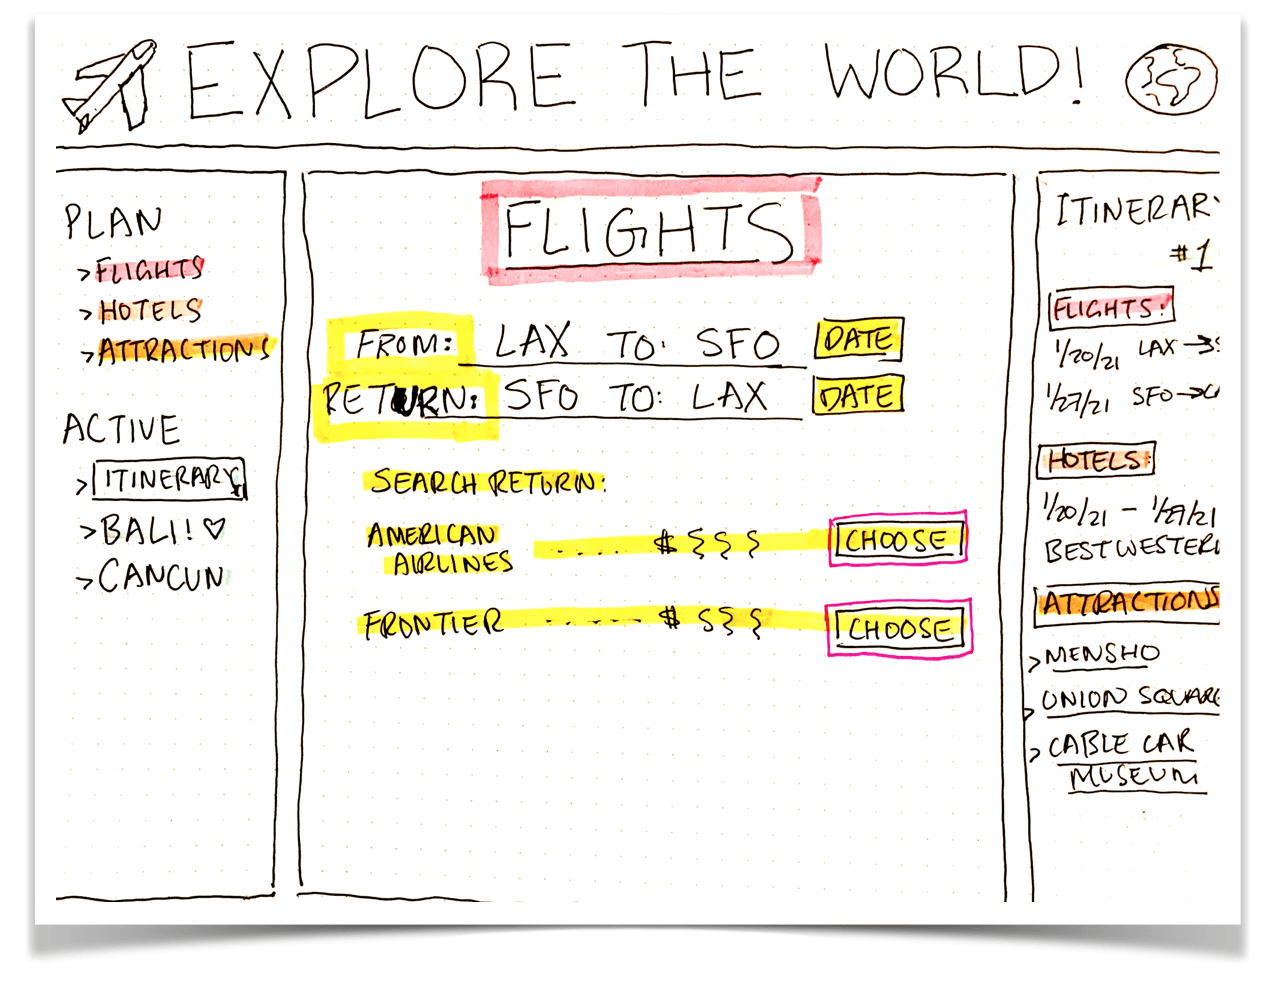 explore the world web app draft